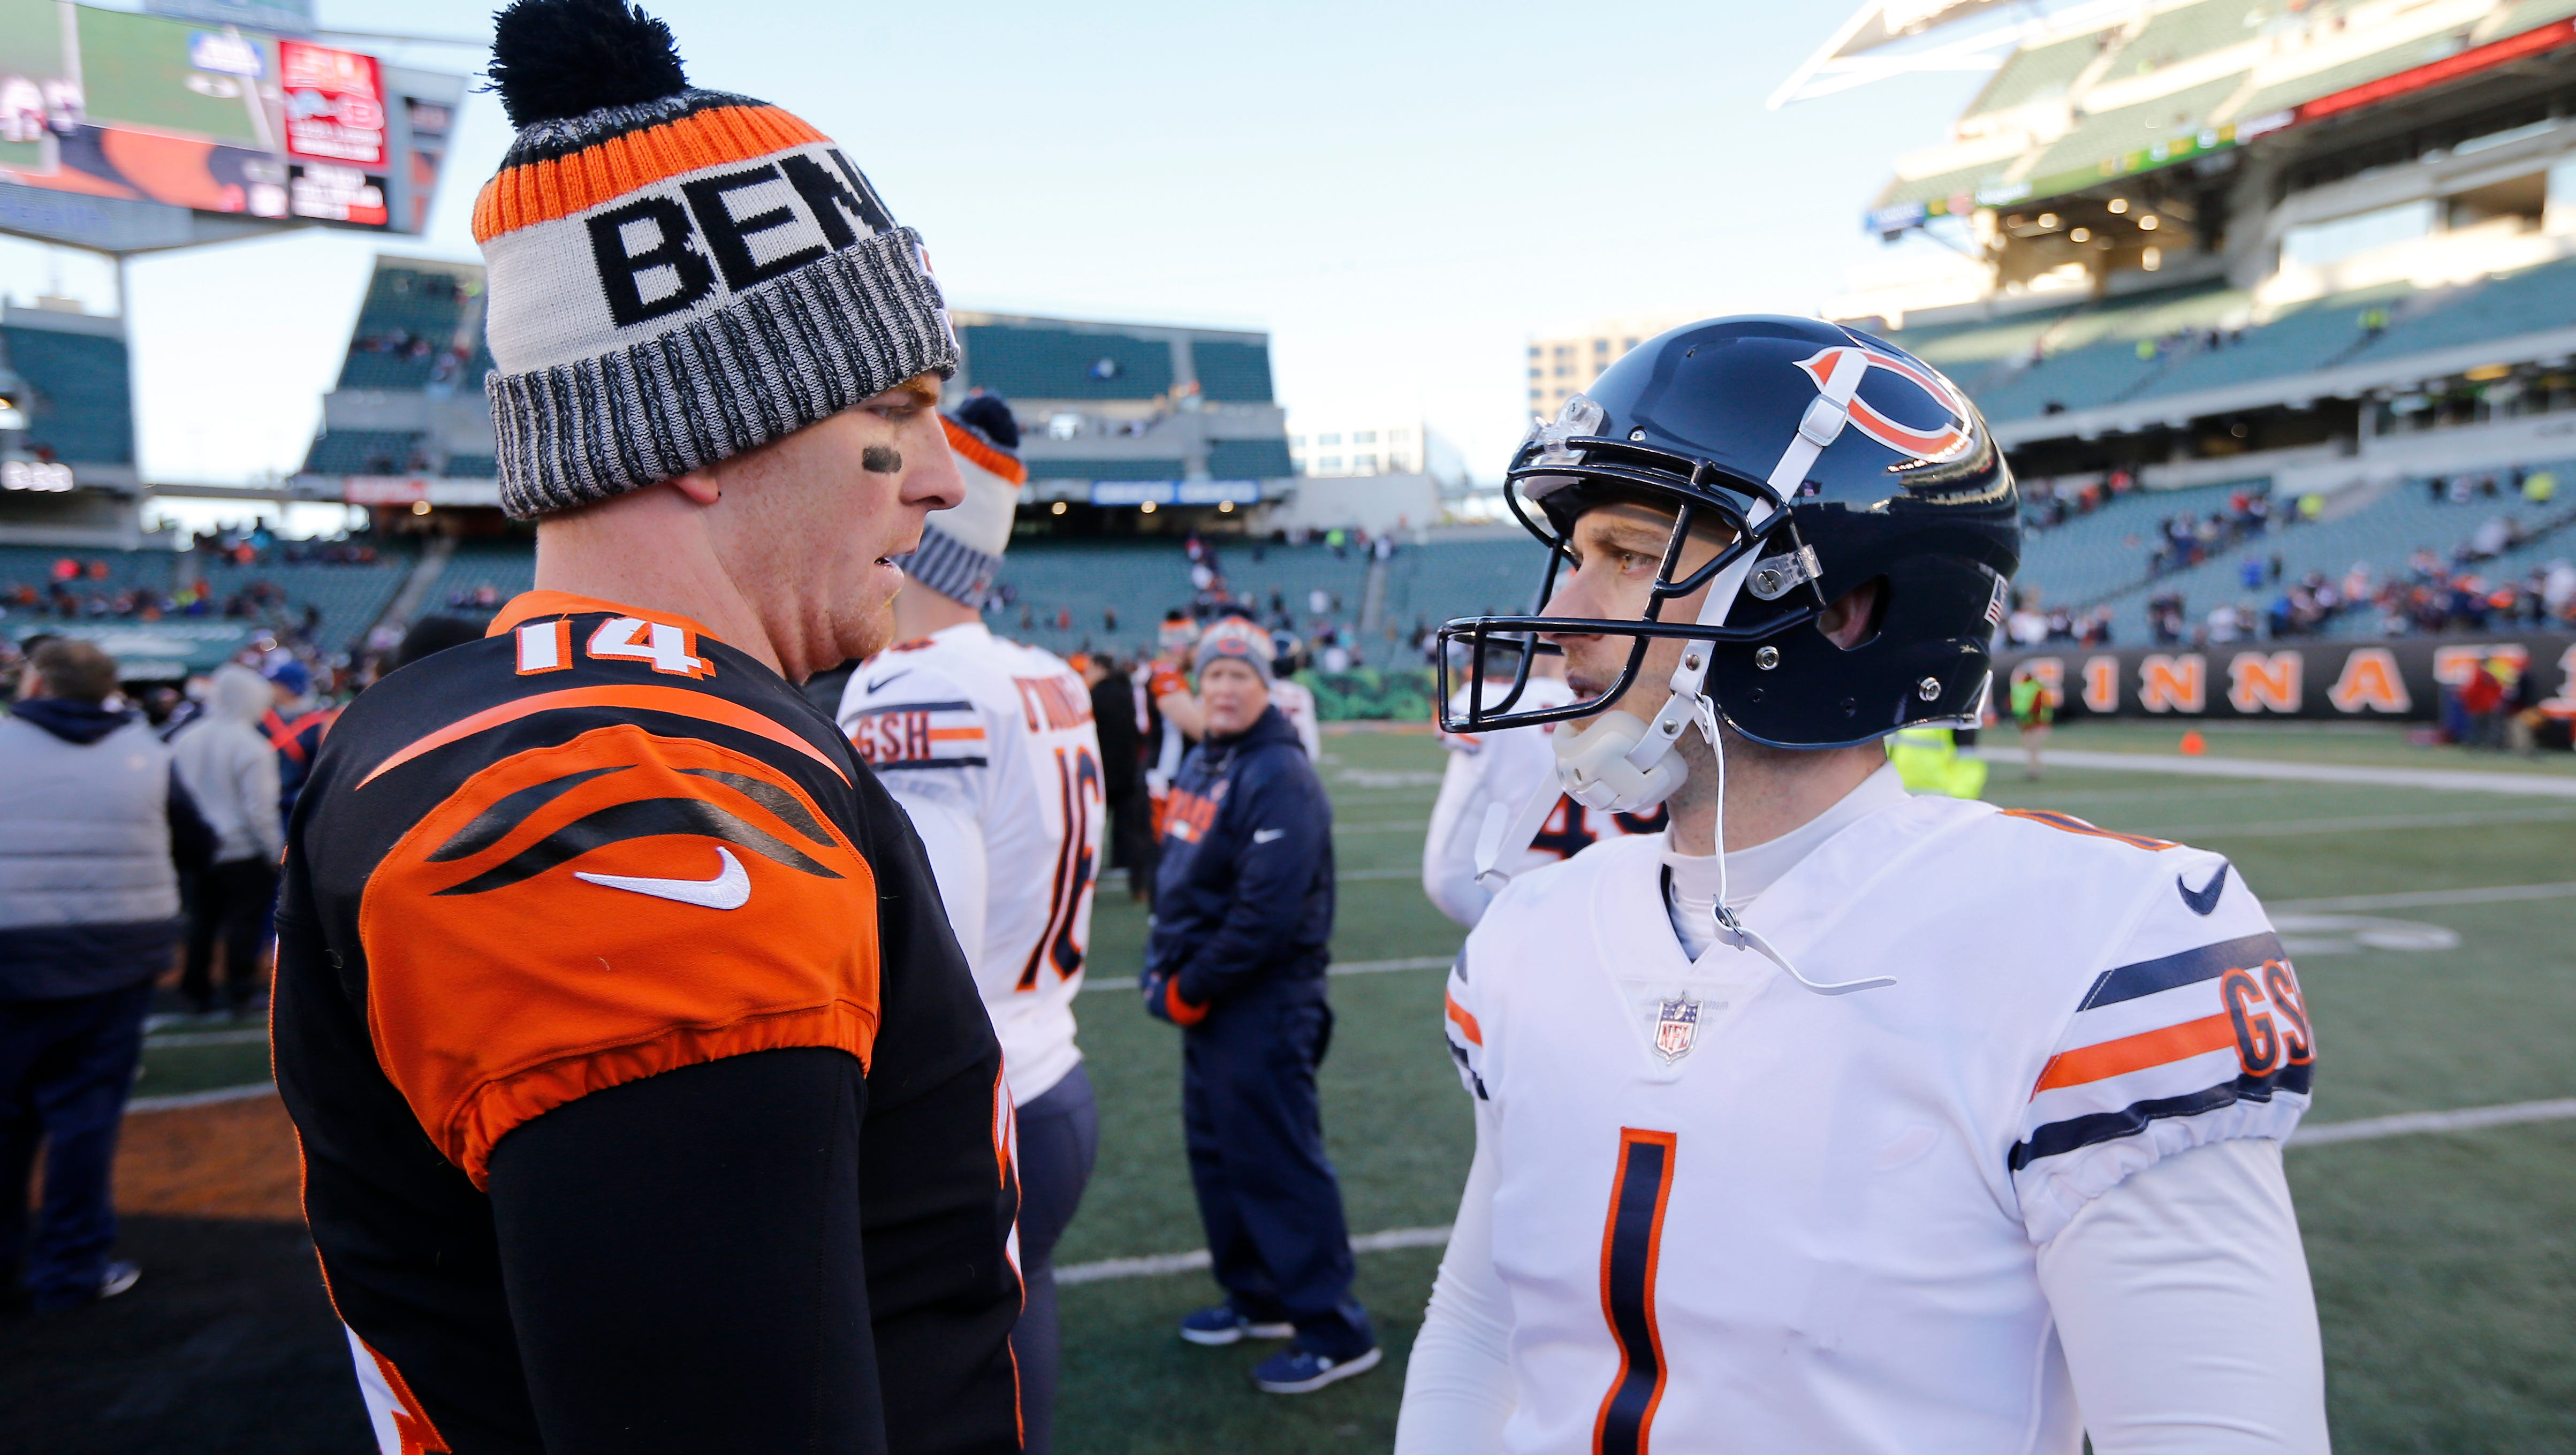 Mike Nugent reports theft of jersey, helmet, cleats, Christmas gifts